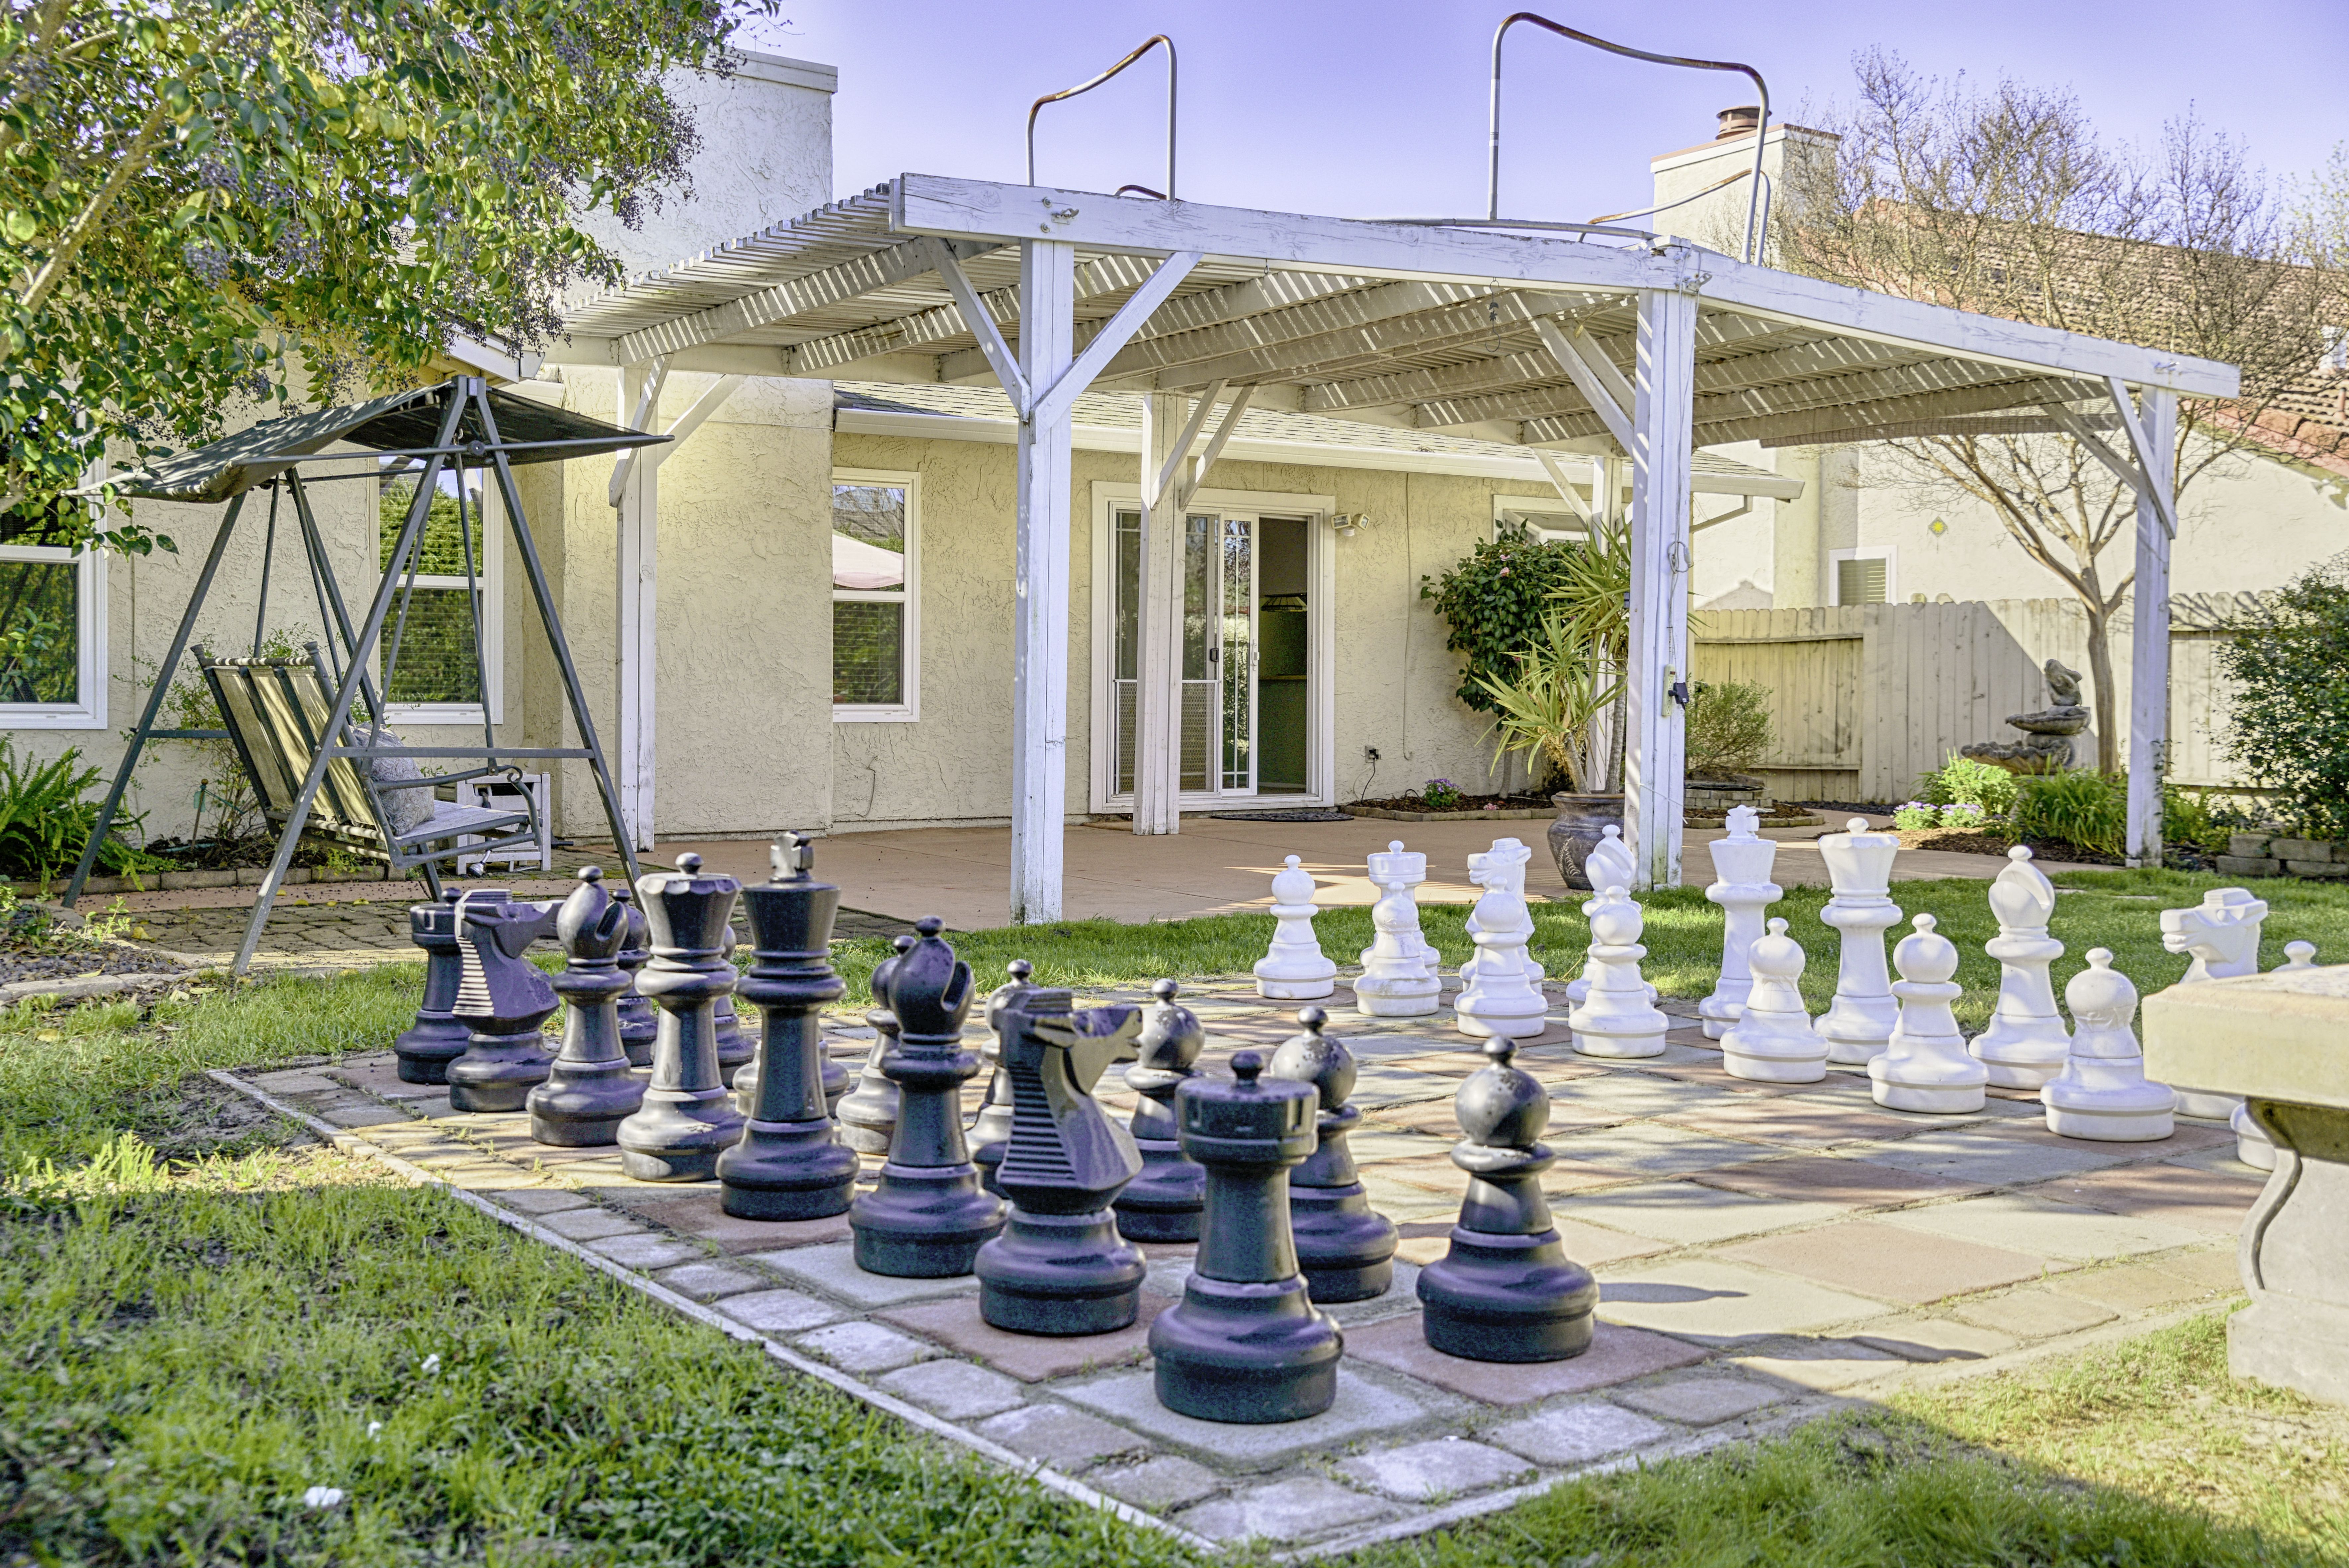 Chess set in Elk Grove starter home